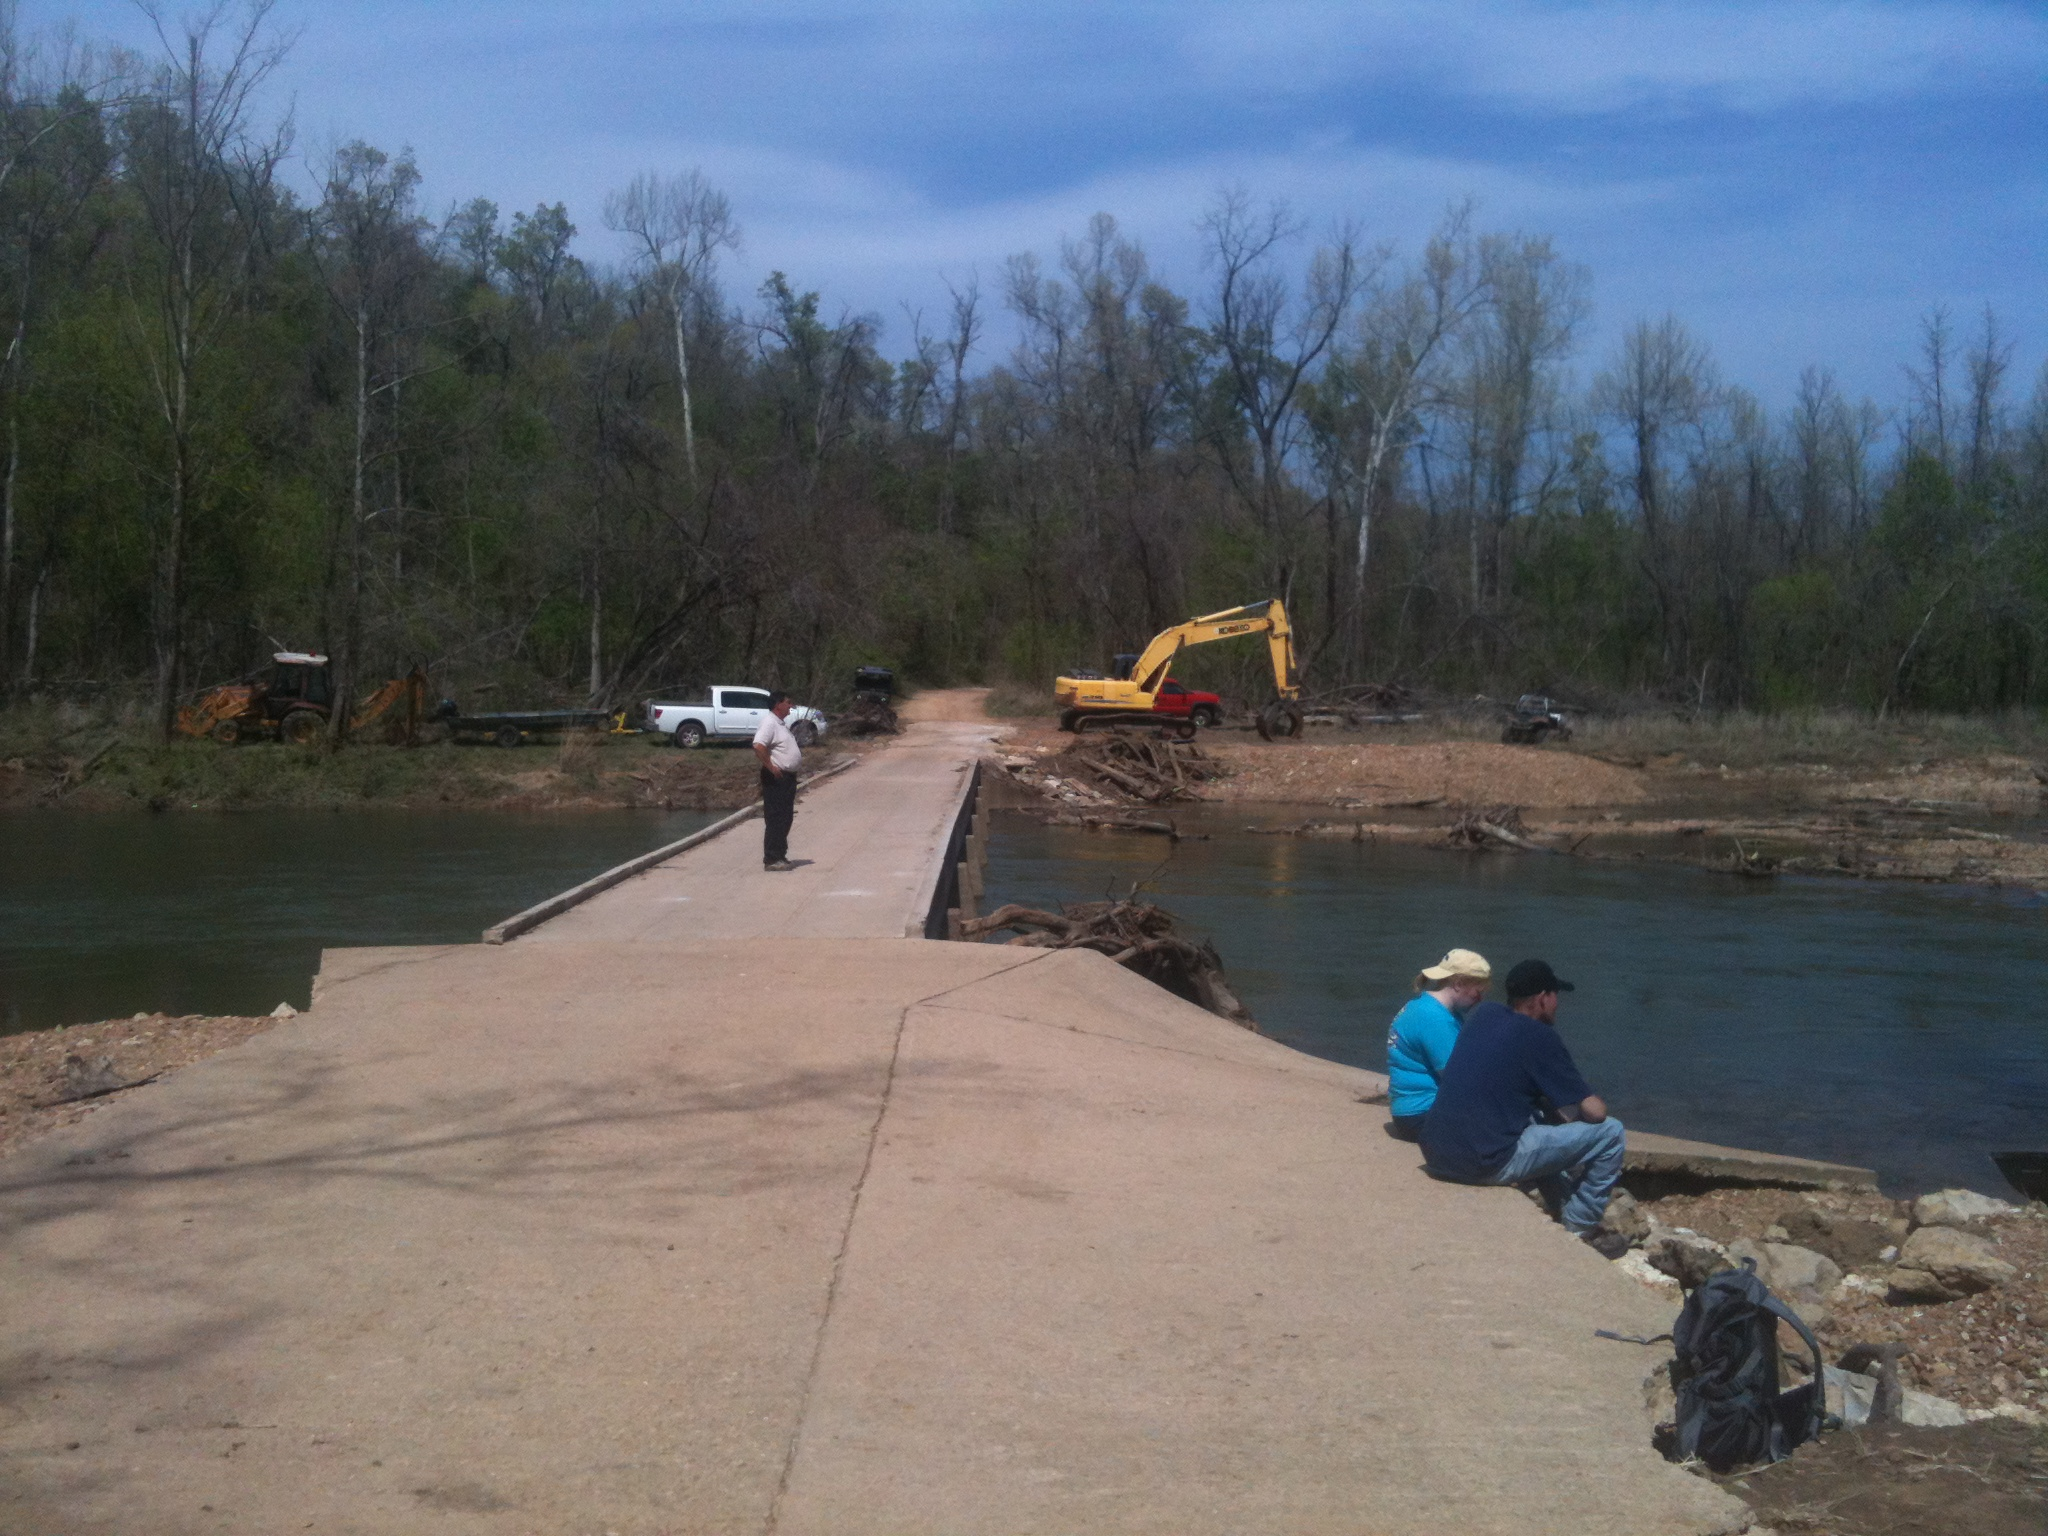 Bridge site on South Fork River where Caleb went missing